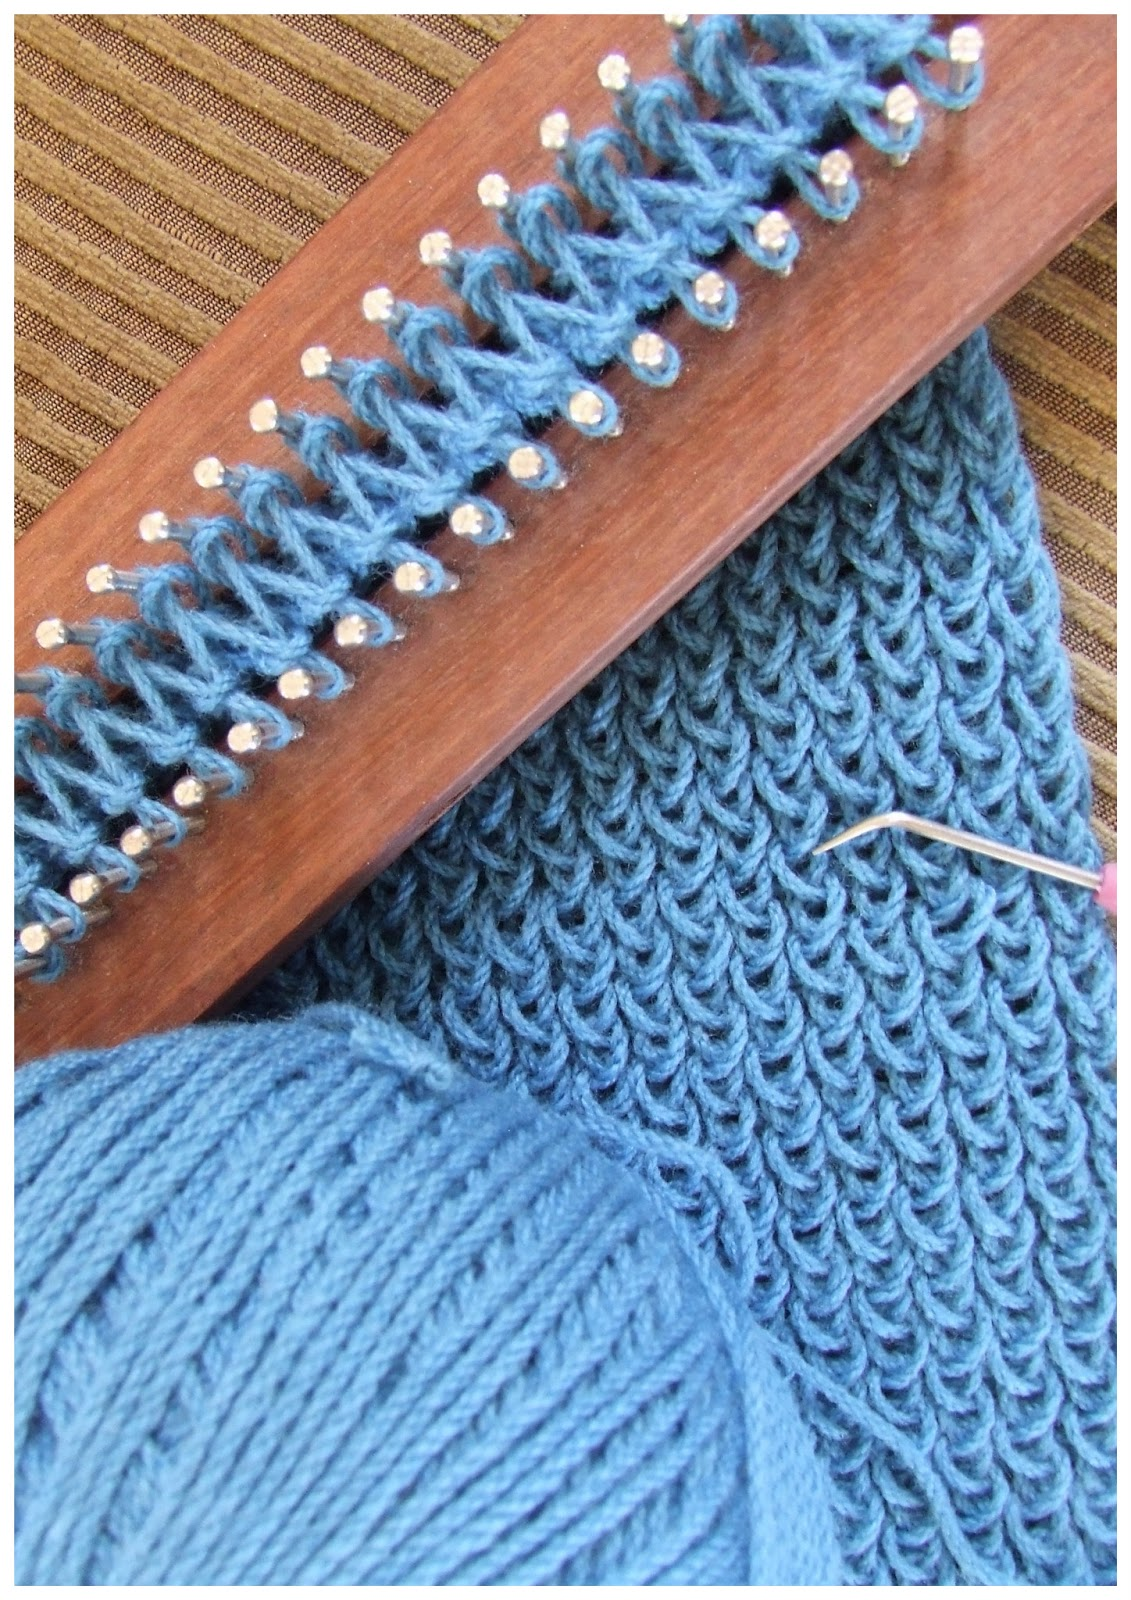 Knitting Loom Pattern : FitzBirch Crafts: Loom Knitting